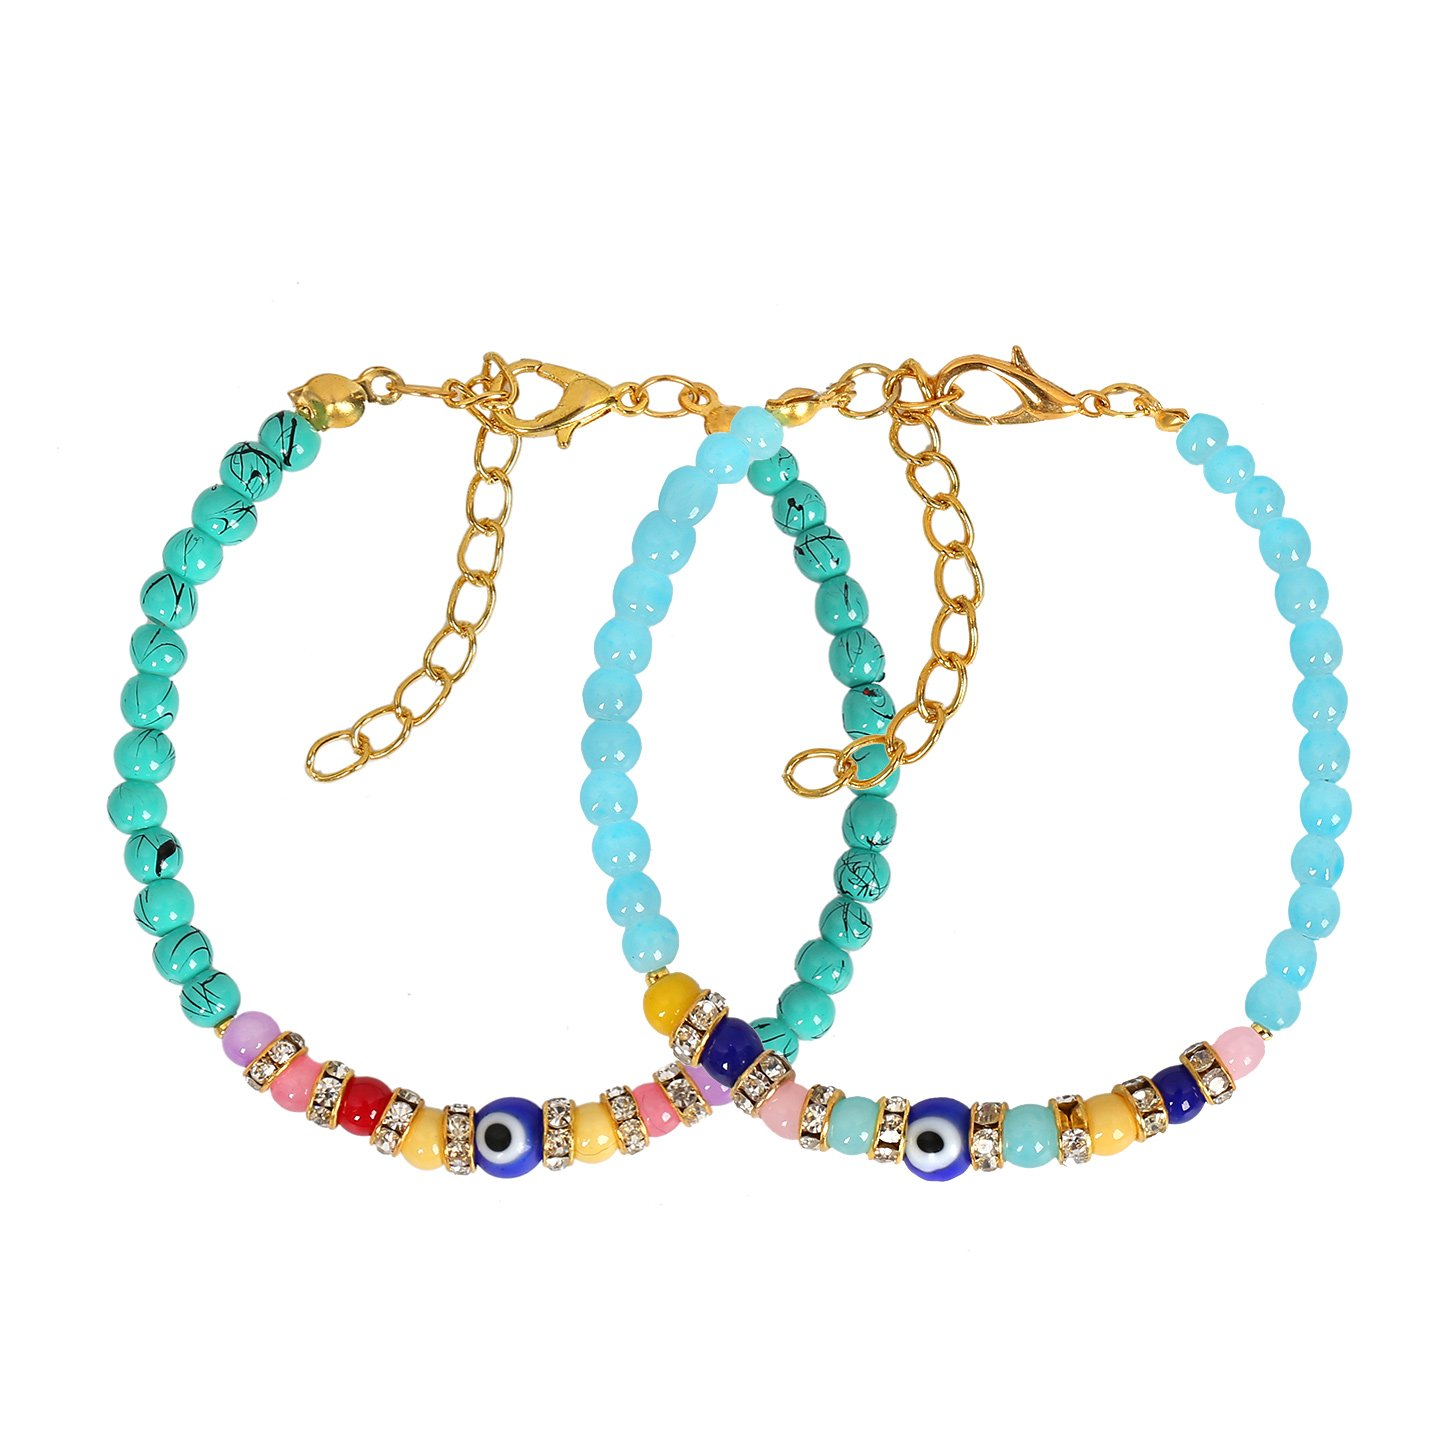 Evil Eye Protection Love Couples Amulets Set Simuled Turquoise Sky Blue Colorful Crystal Bracelets